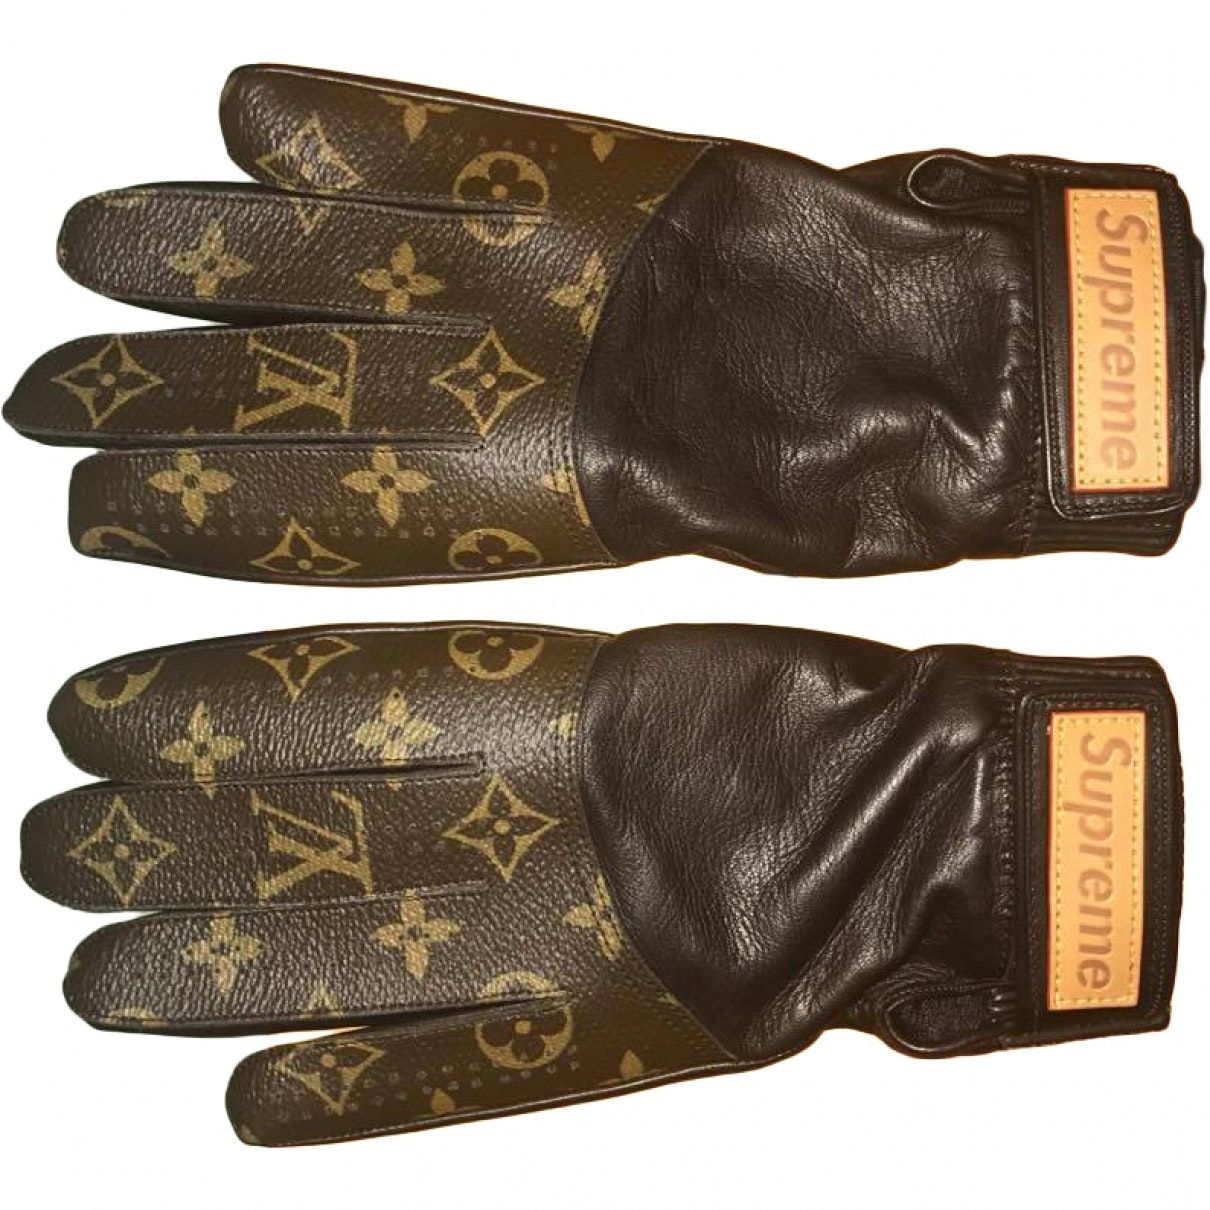 Louis Vuitton X Supreme Gloves